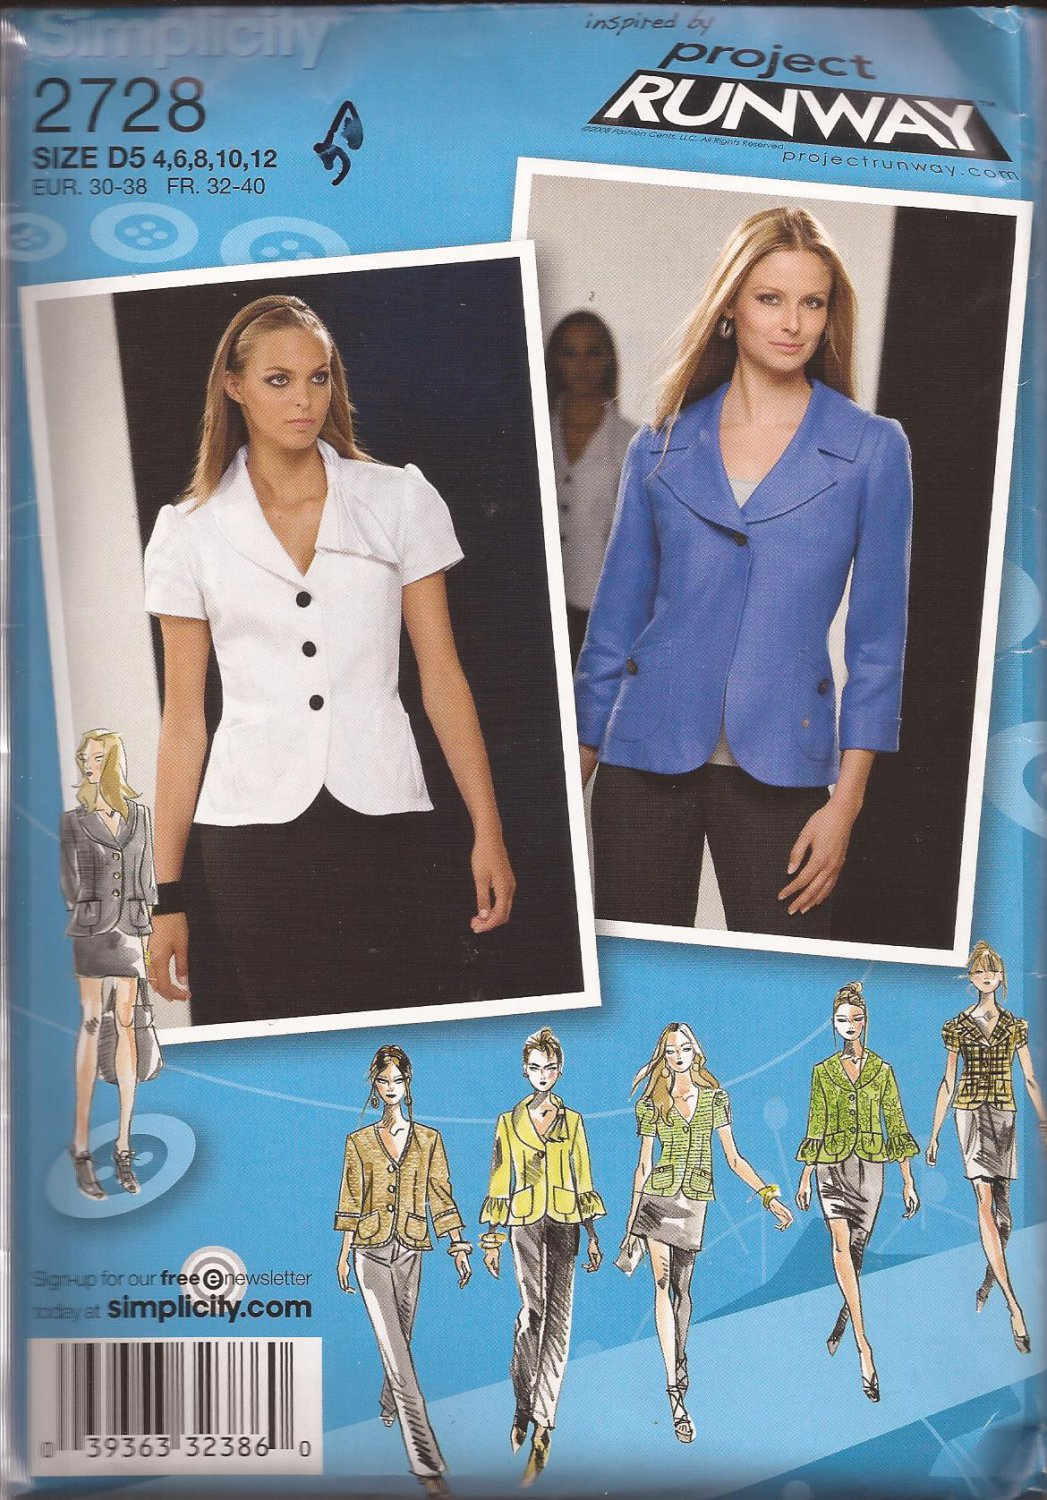 Simplicity Project Runway 2728 (2008) Jacket Collar Sleeve Variations Pattern Size 4 6 8 10 12 UNCUT